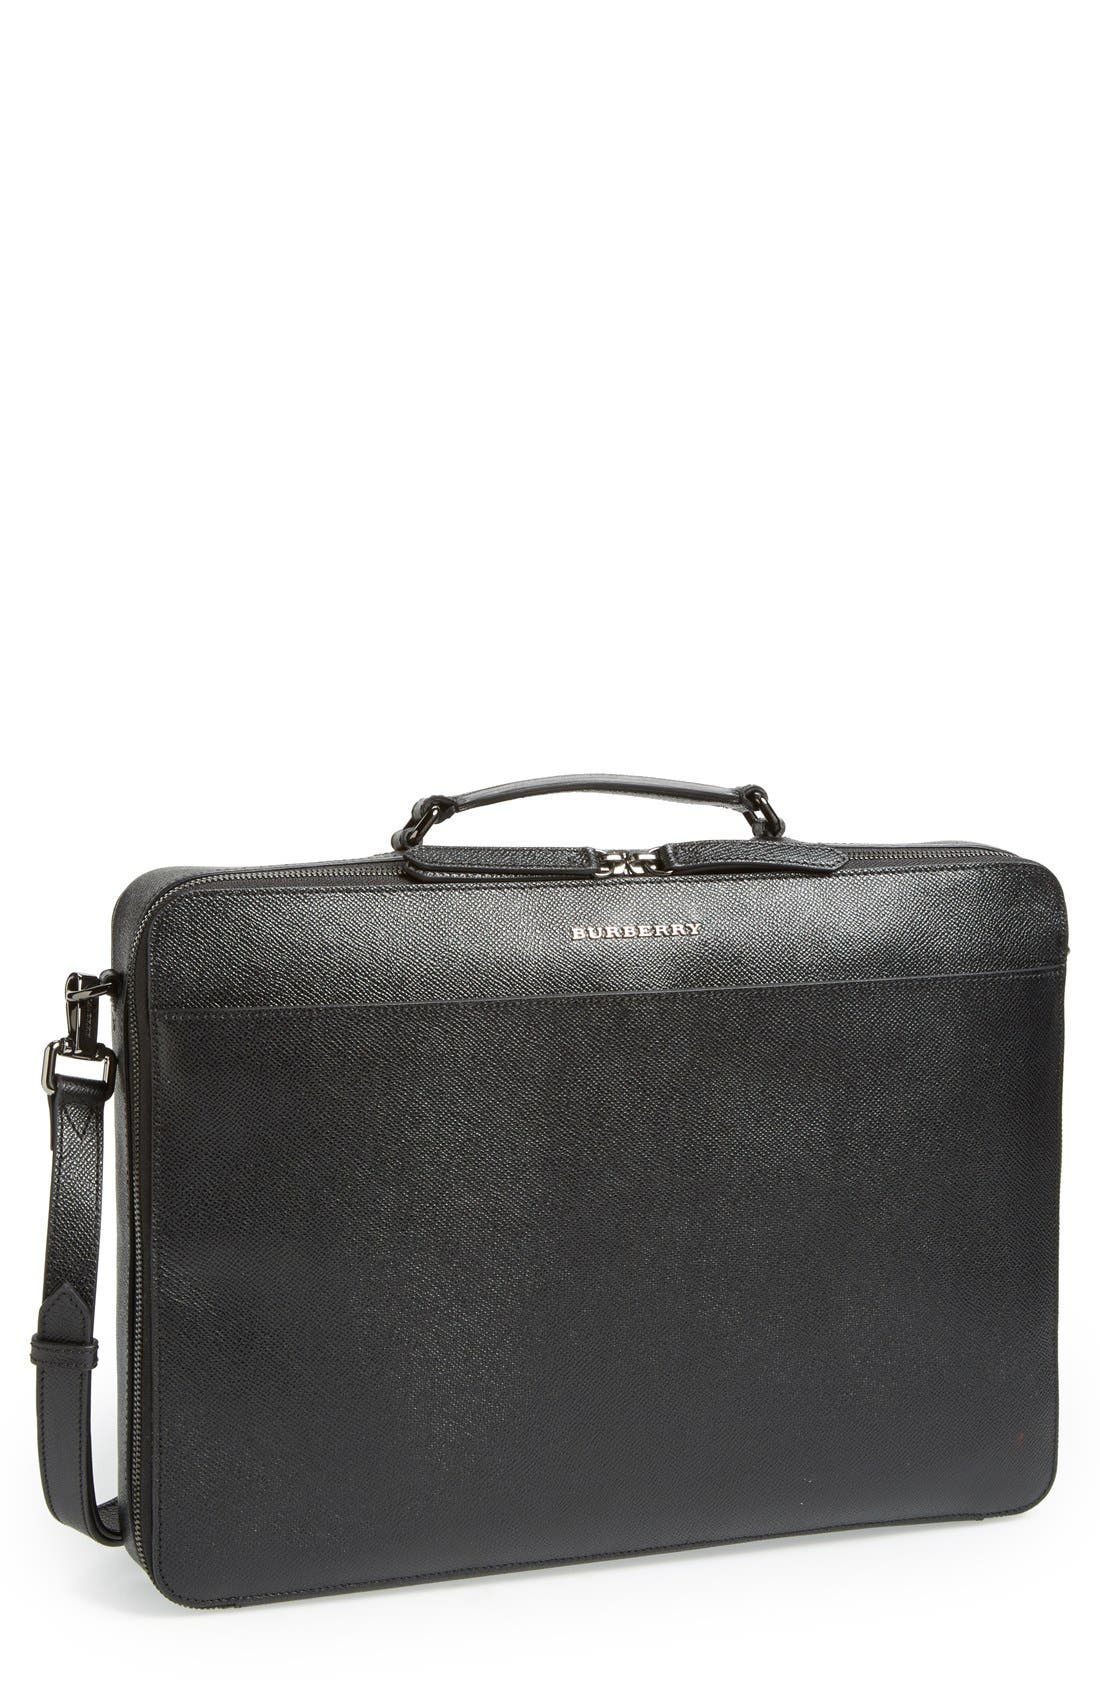 Main Image - Burberry 'Blackmore' Leather Computer Briefcase